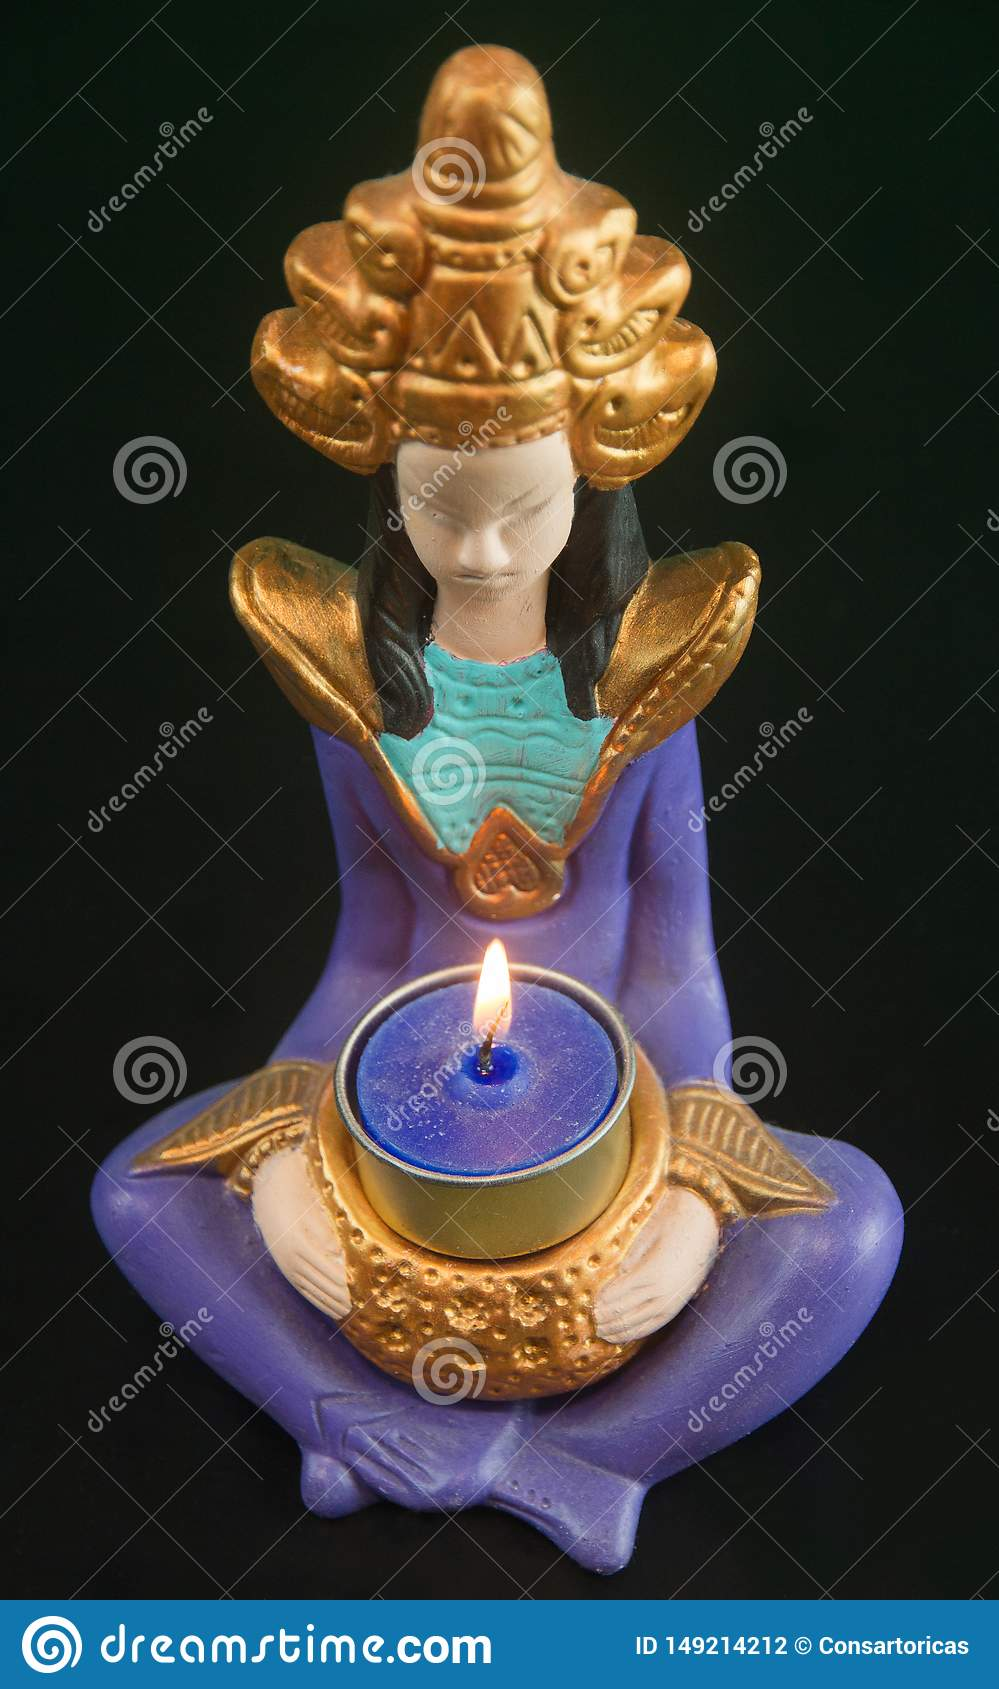 CRAFTSMANSHIP OF A RELIGIOUS WOMAN HOLDING A CANDLE